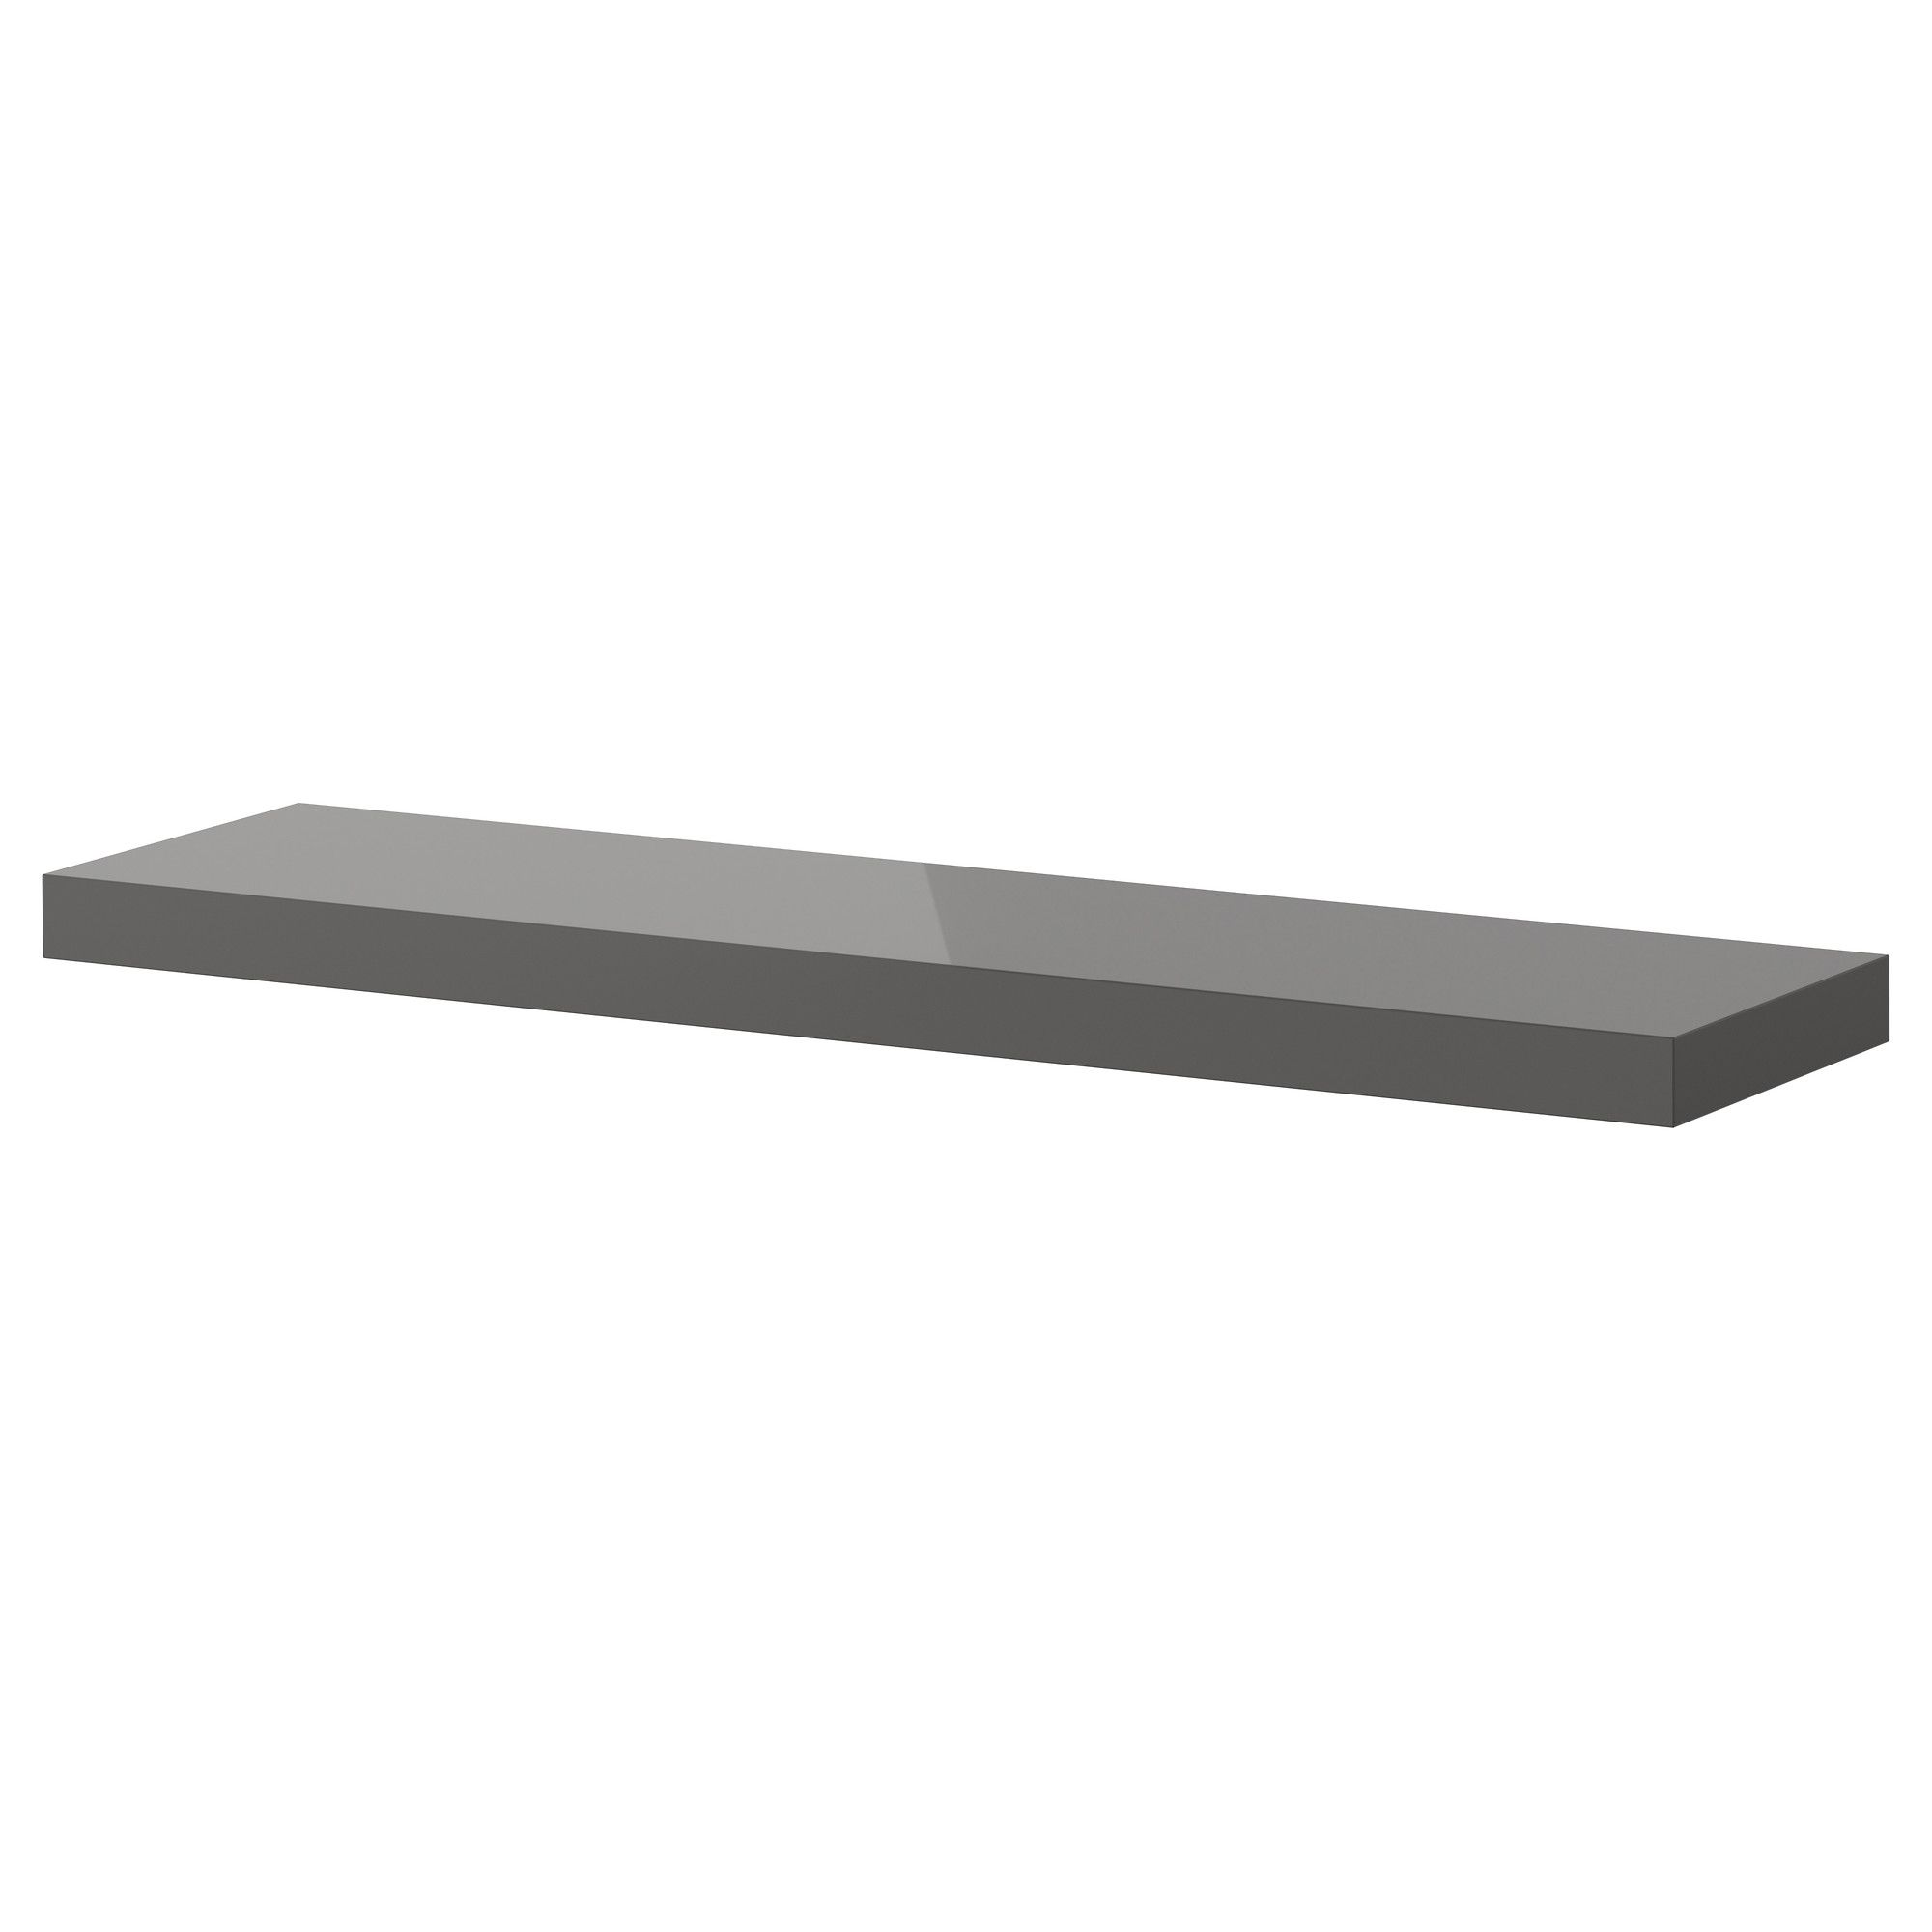 lack wall shelf high gloss gray ikea home black floating side supports small space bathroom storage garage systems bedroom ledge airing cupboard baskets shower scraper drill brush